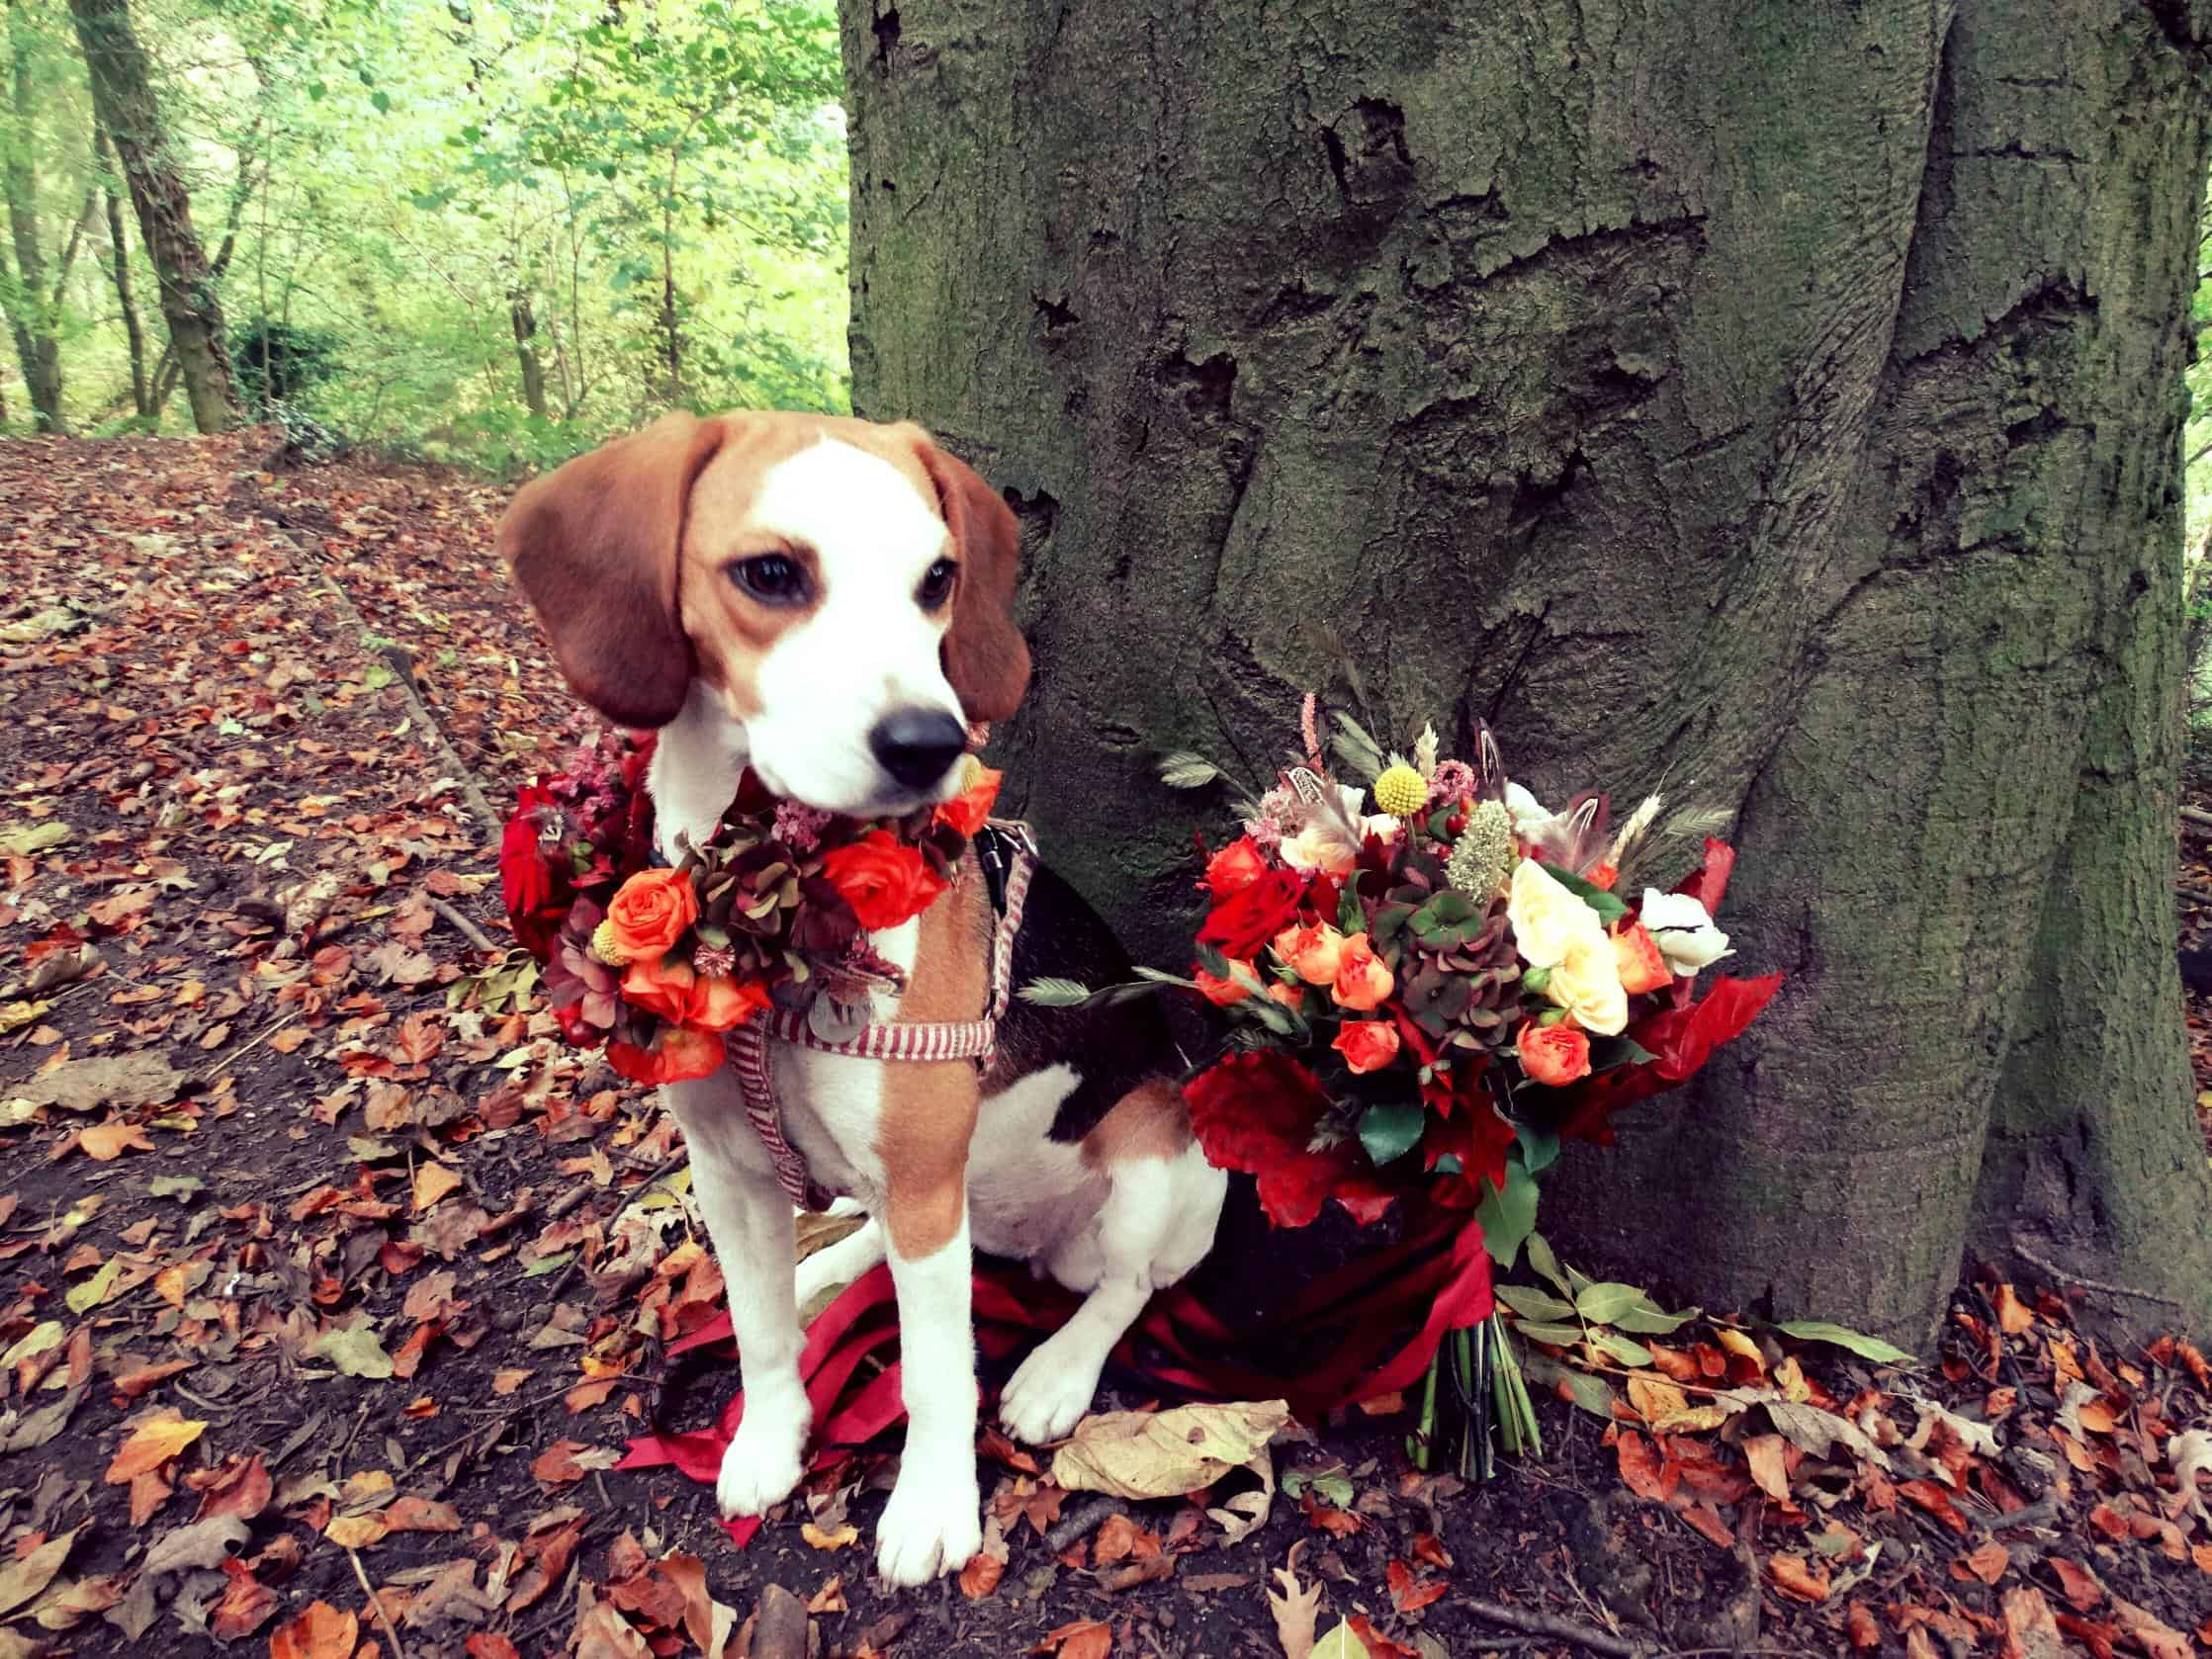 Bramble the Beagle dressed in flowers